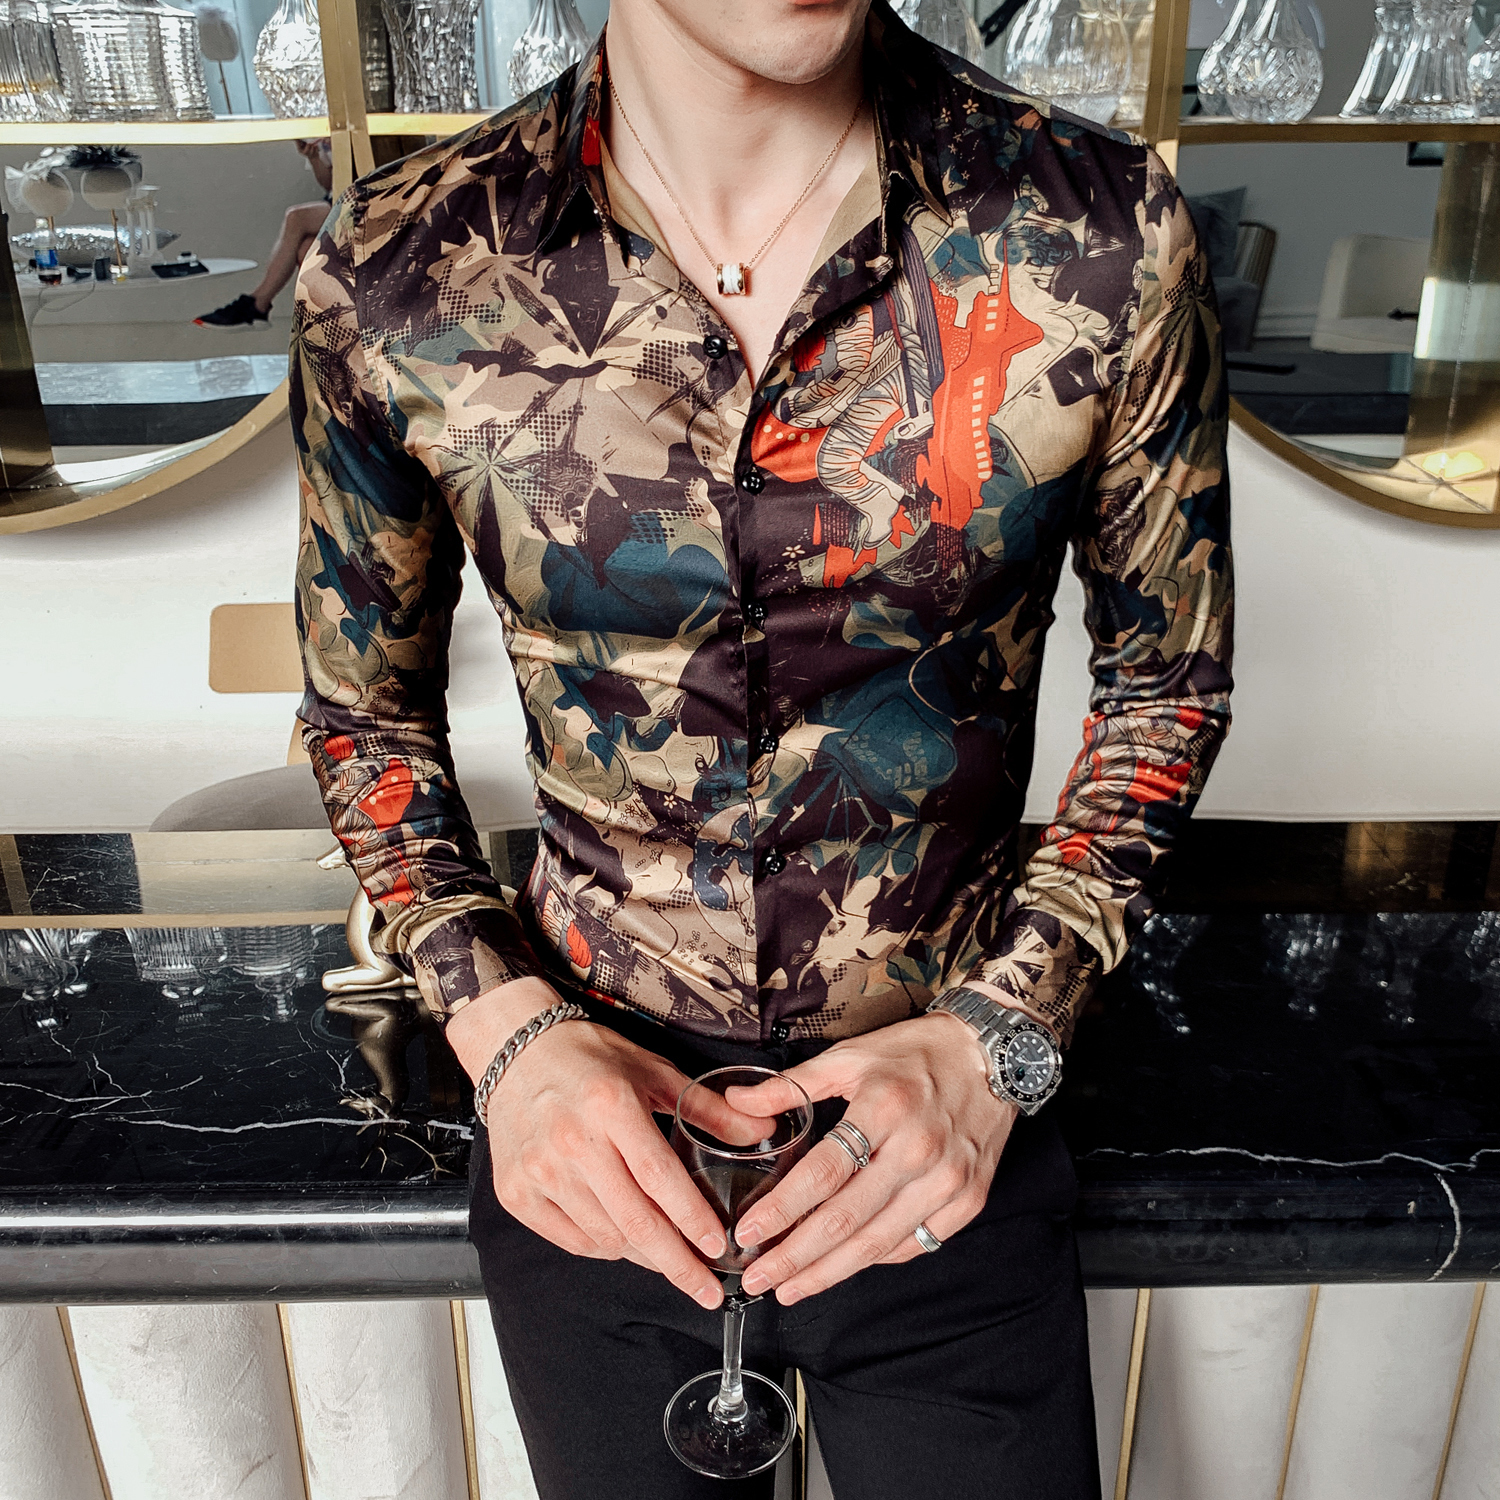 Leaf Print Shirt Men Flower Shirt Casual Shirts Slim Fit Party Dress Shirt Fashion 2019 Autumn Long Sleeve Digital Print Men 4xl